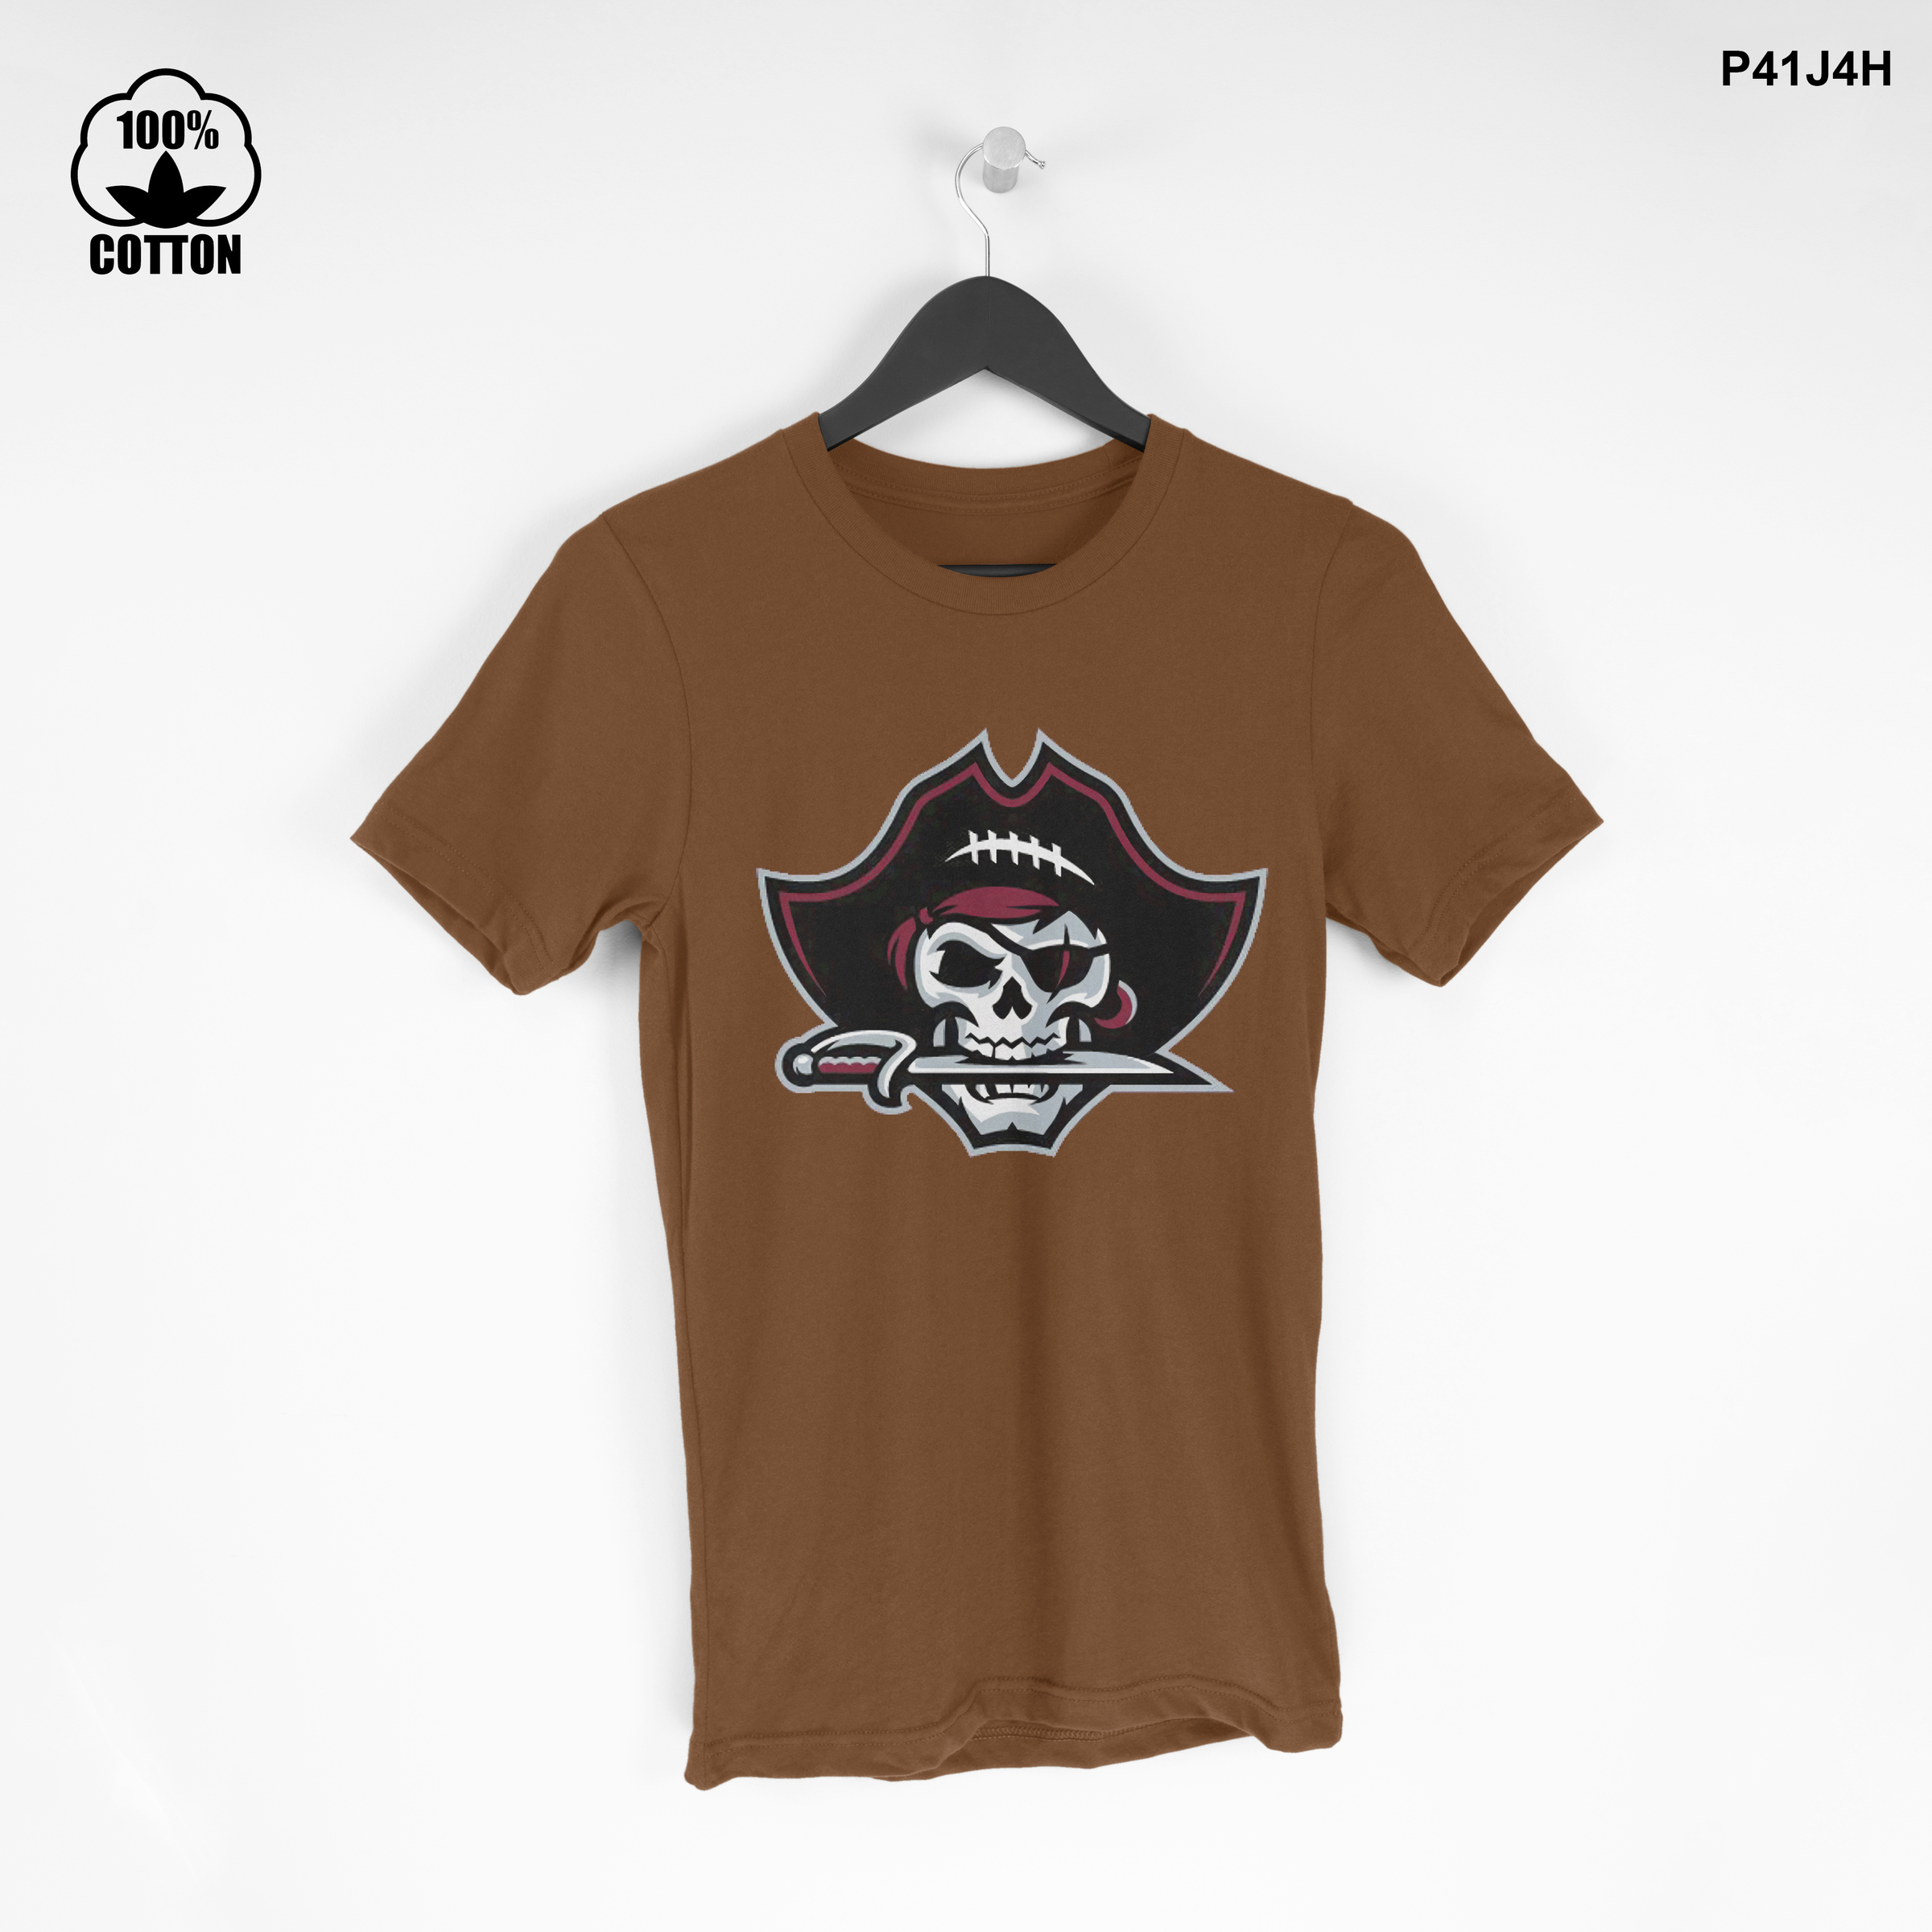 LIMITED EDITION!! buccaneers-pittsburgh-pirates-dream T SHIRT TEE Saddle Brown.jpg